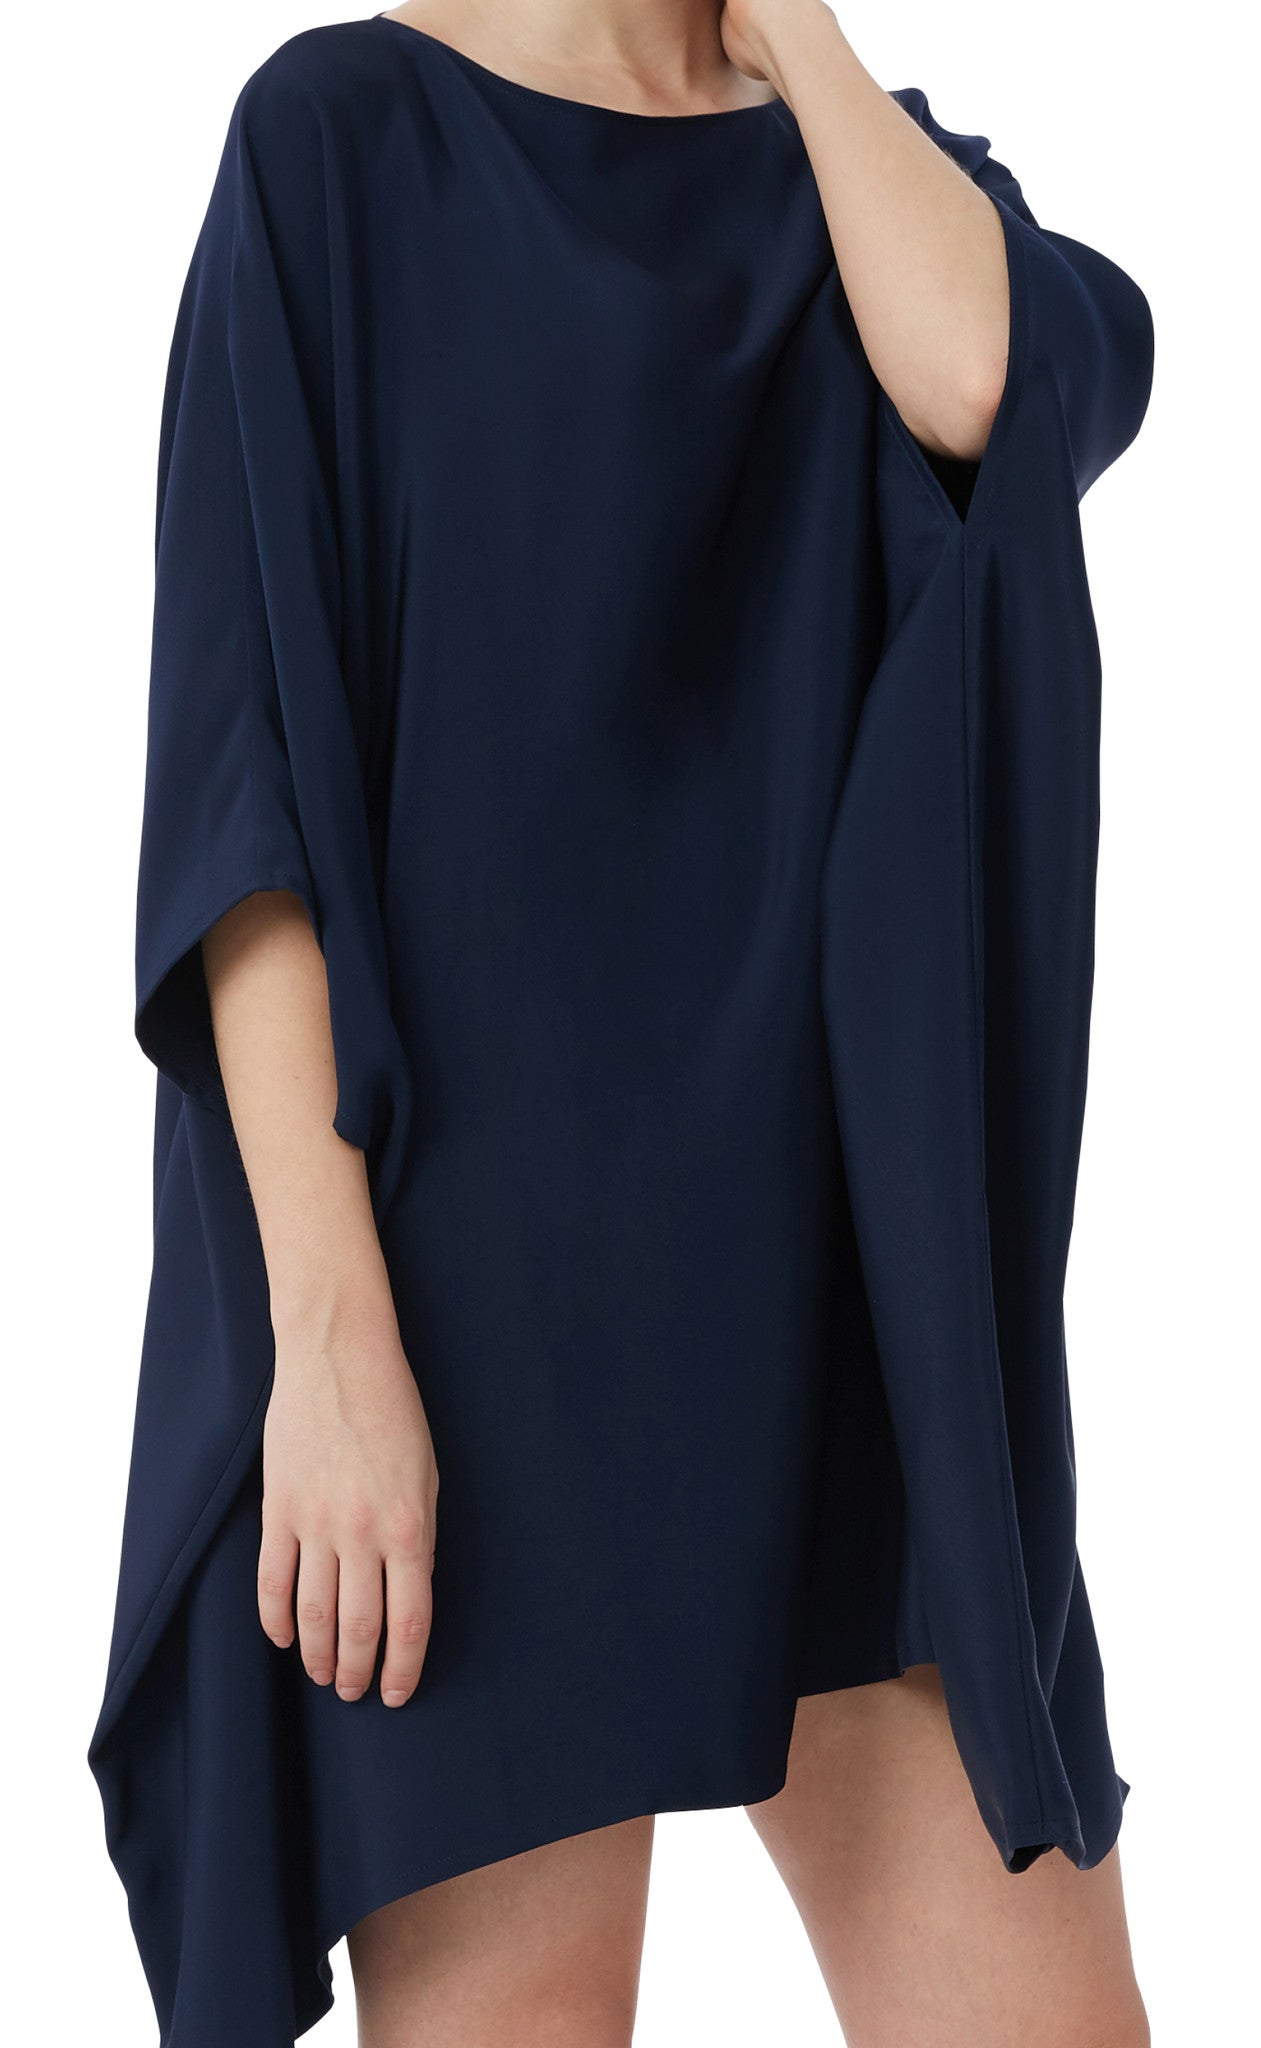 editions de robes SS17 collection cocktail sora navy dress